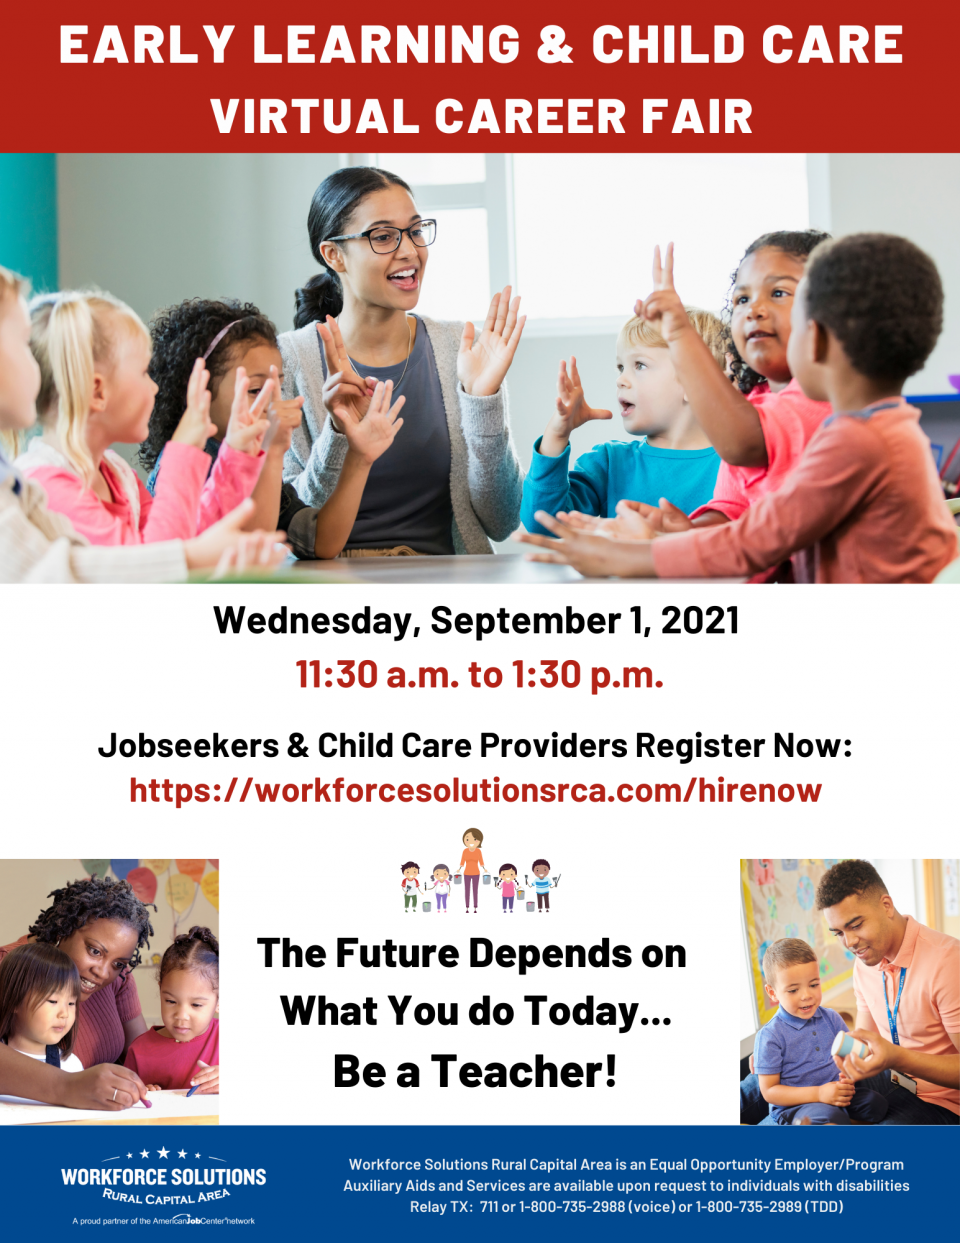 Be a Teacher! Don't Miss the Early Learning & Child Care Virtual Career Fair on September 1